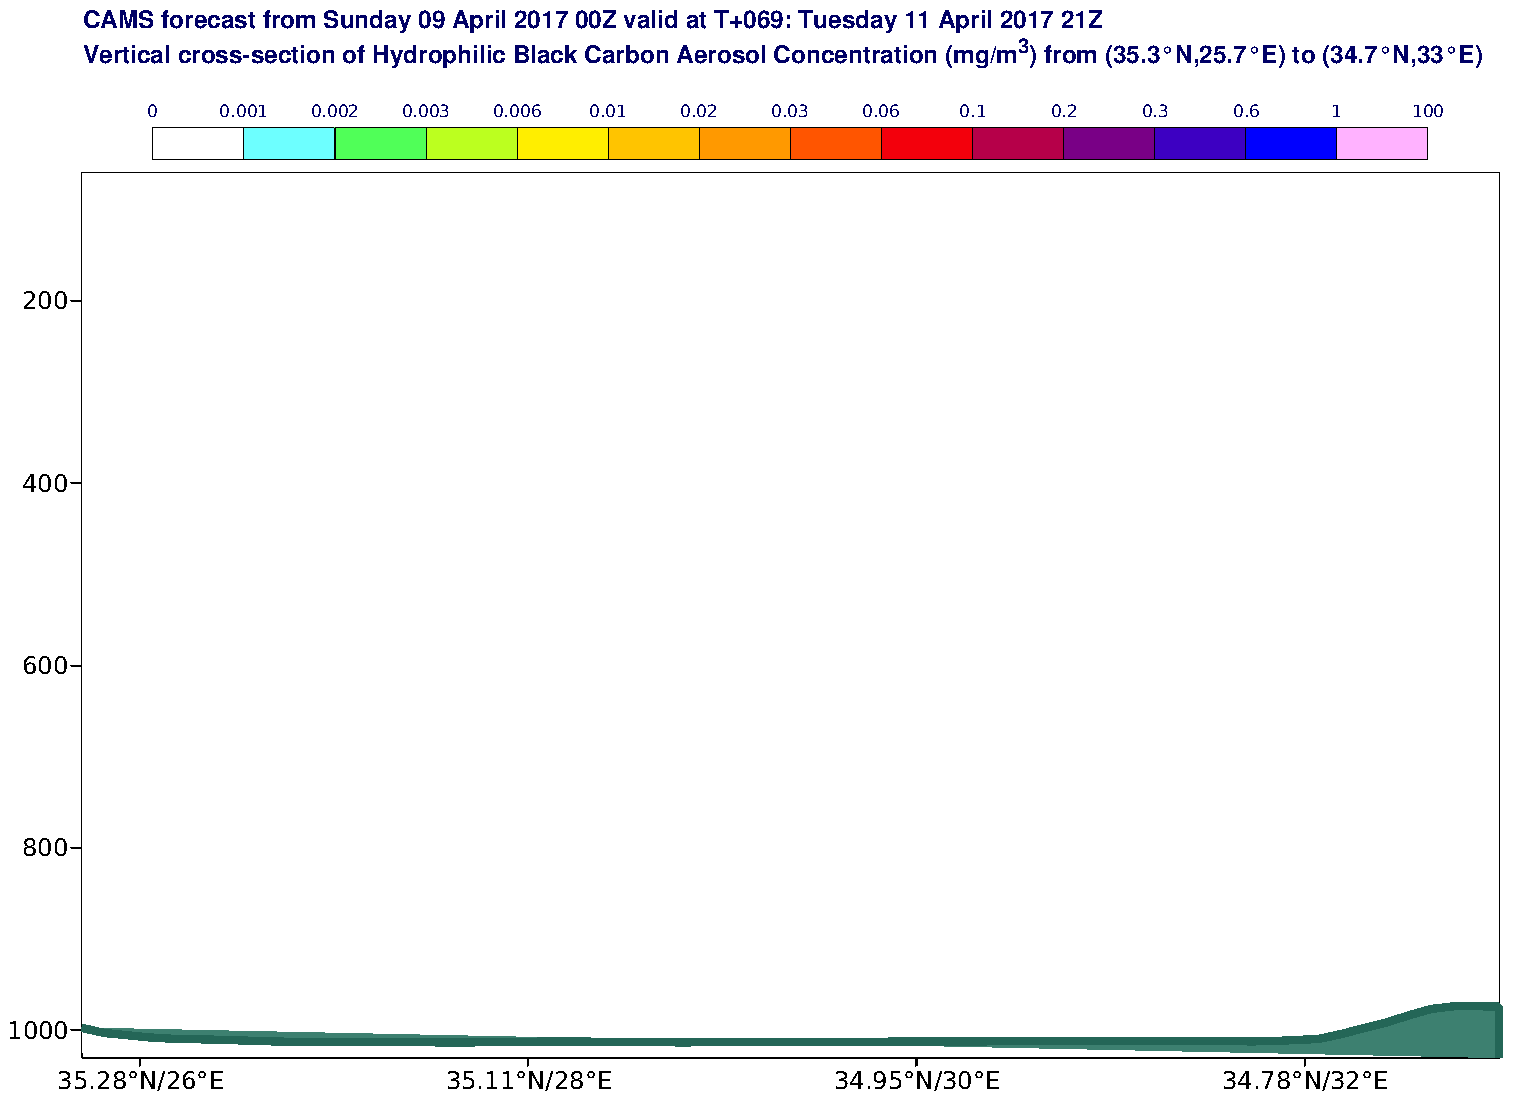 Vertical cross-section of Hydrophilic Black Carbon Aerosol Concentration (mg/m3) valid at T69 - 2017-04-11 21:00